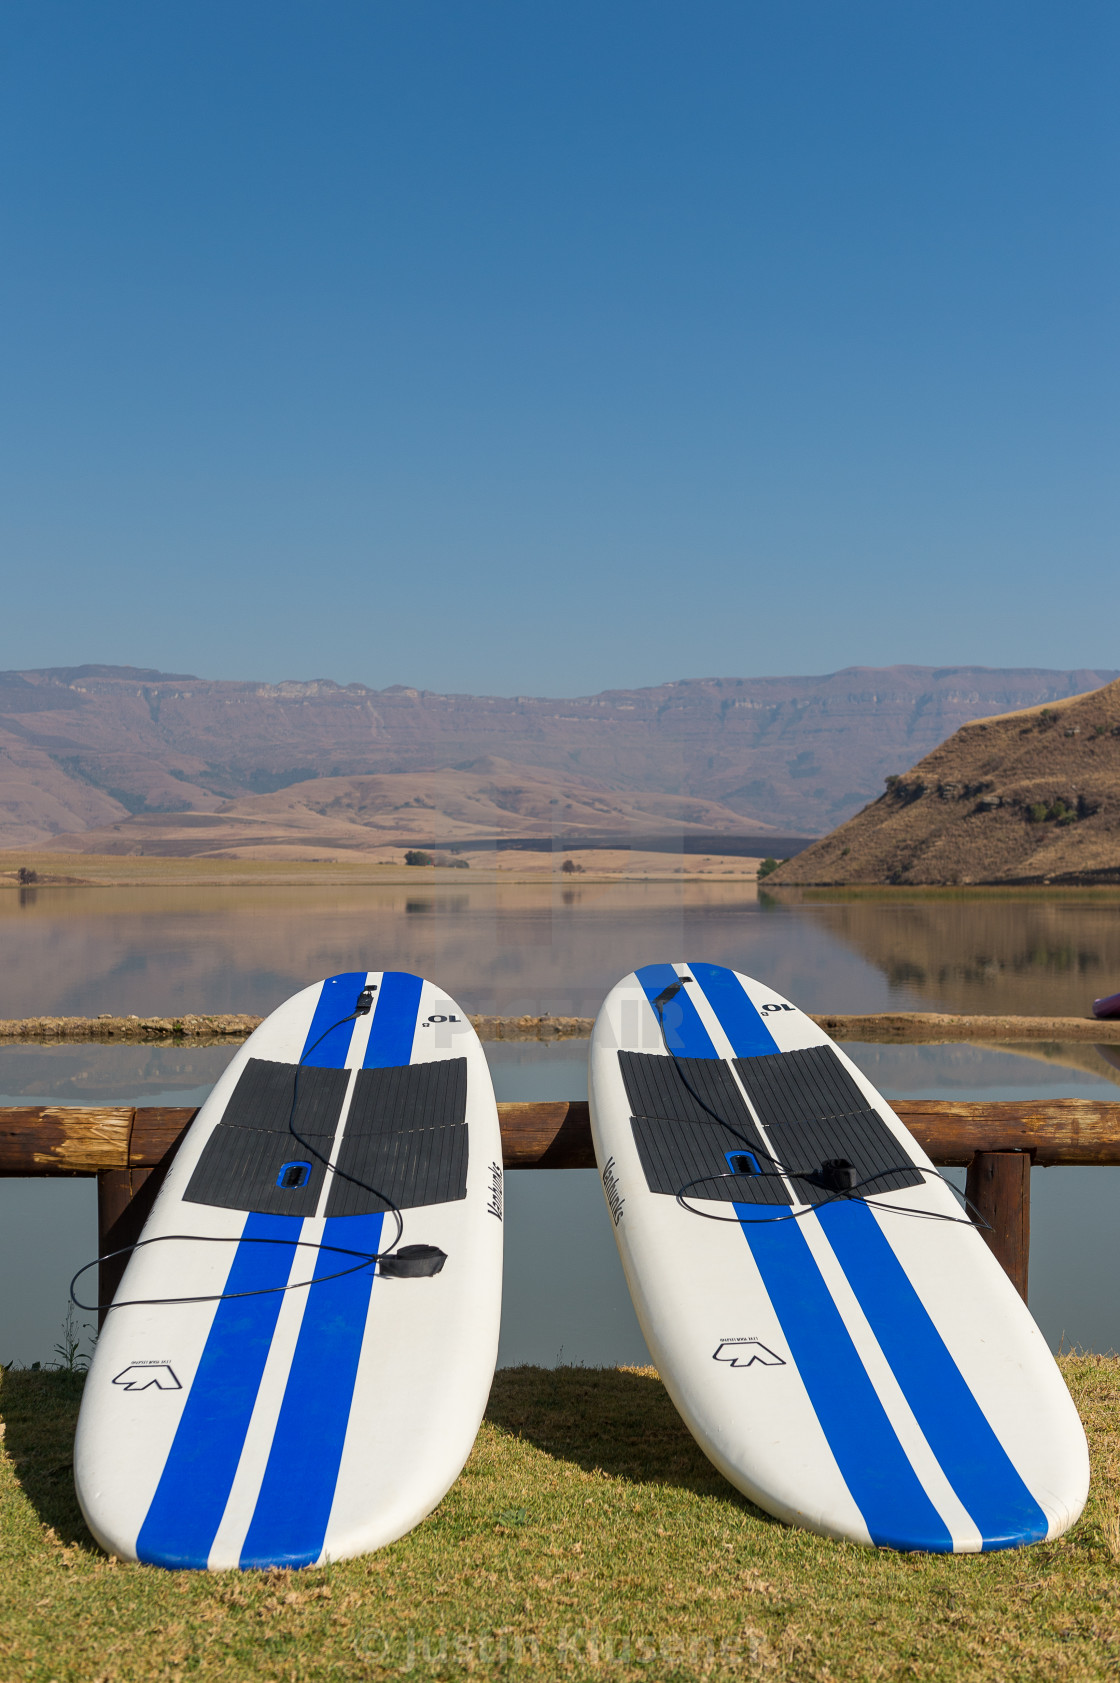 Two Stand Up Paddle Boards